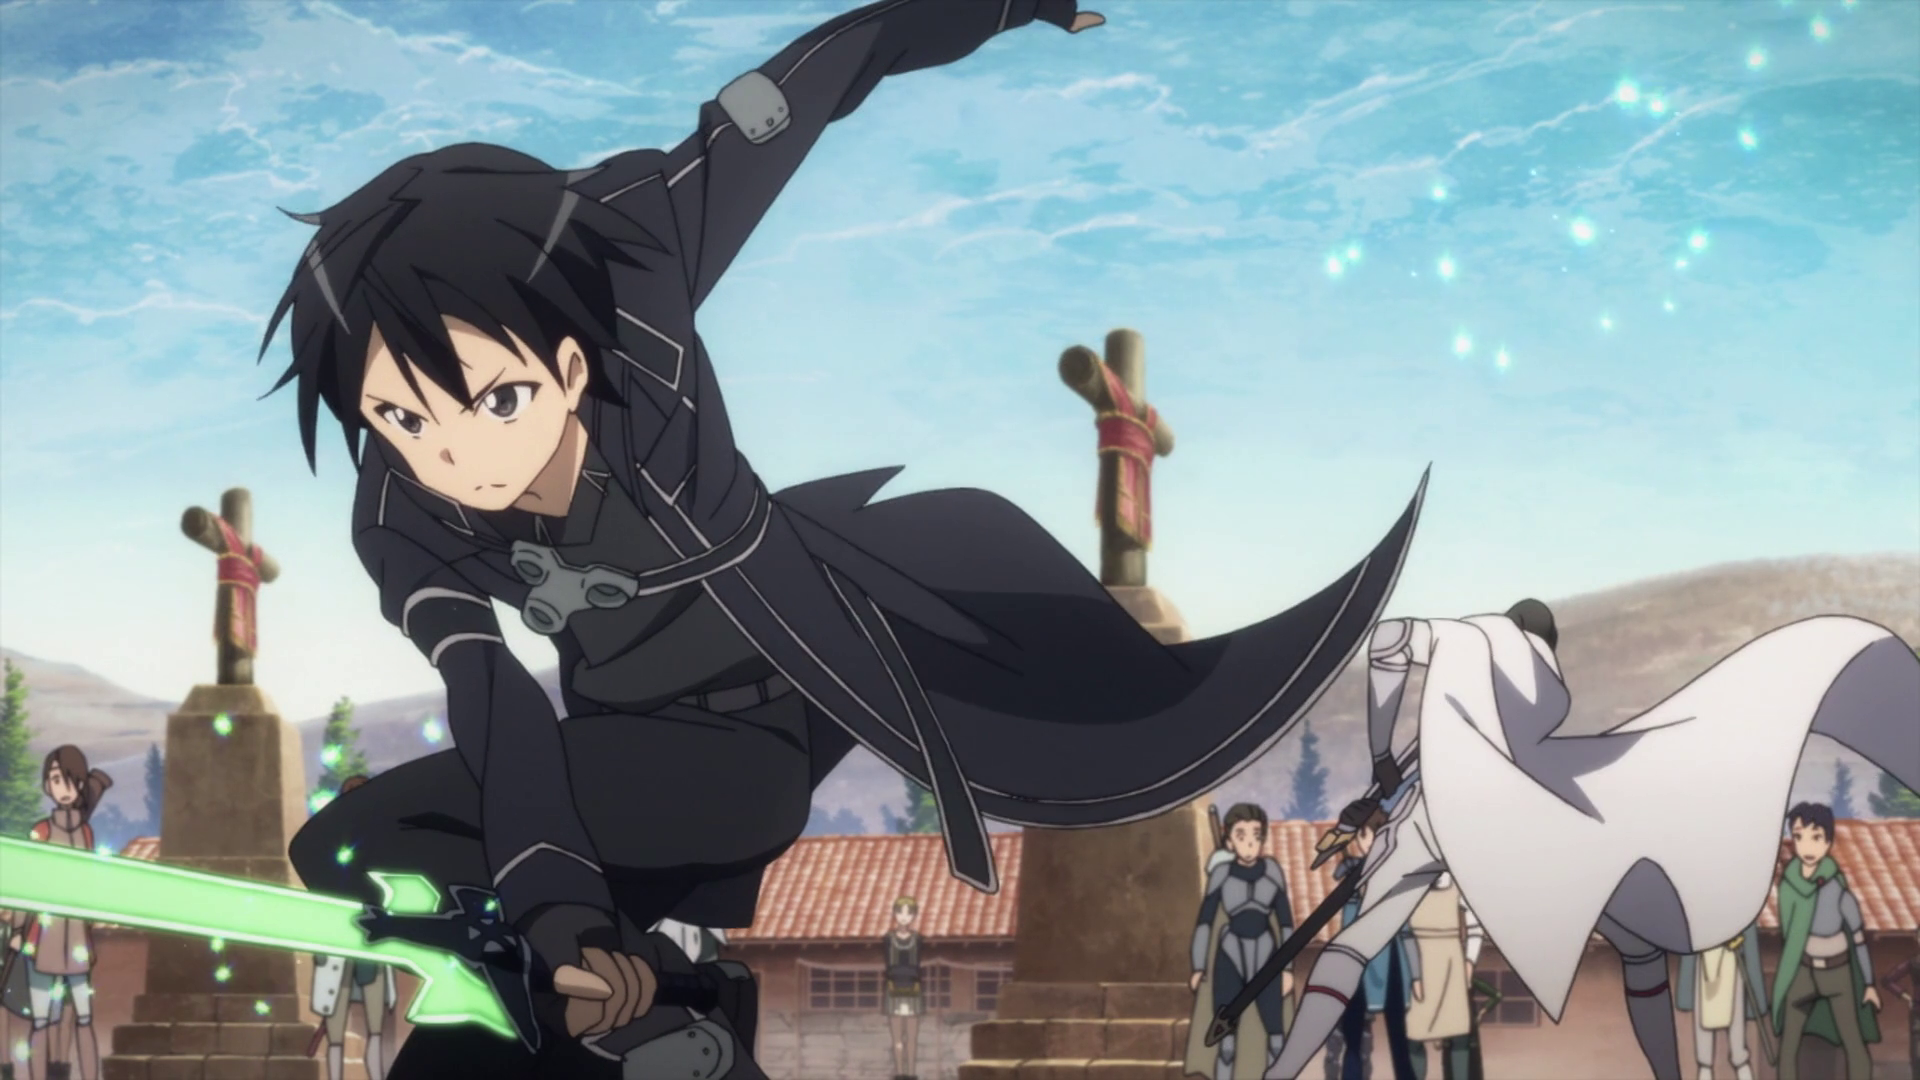 reluctant anime reviews: tenchi muyo/ sword art online | the website